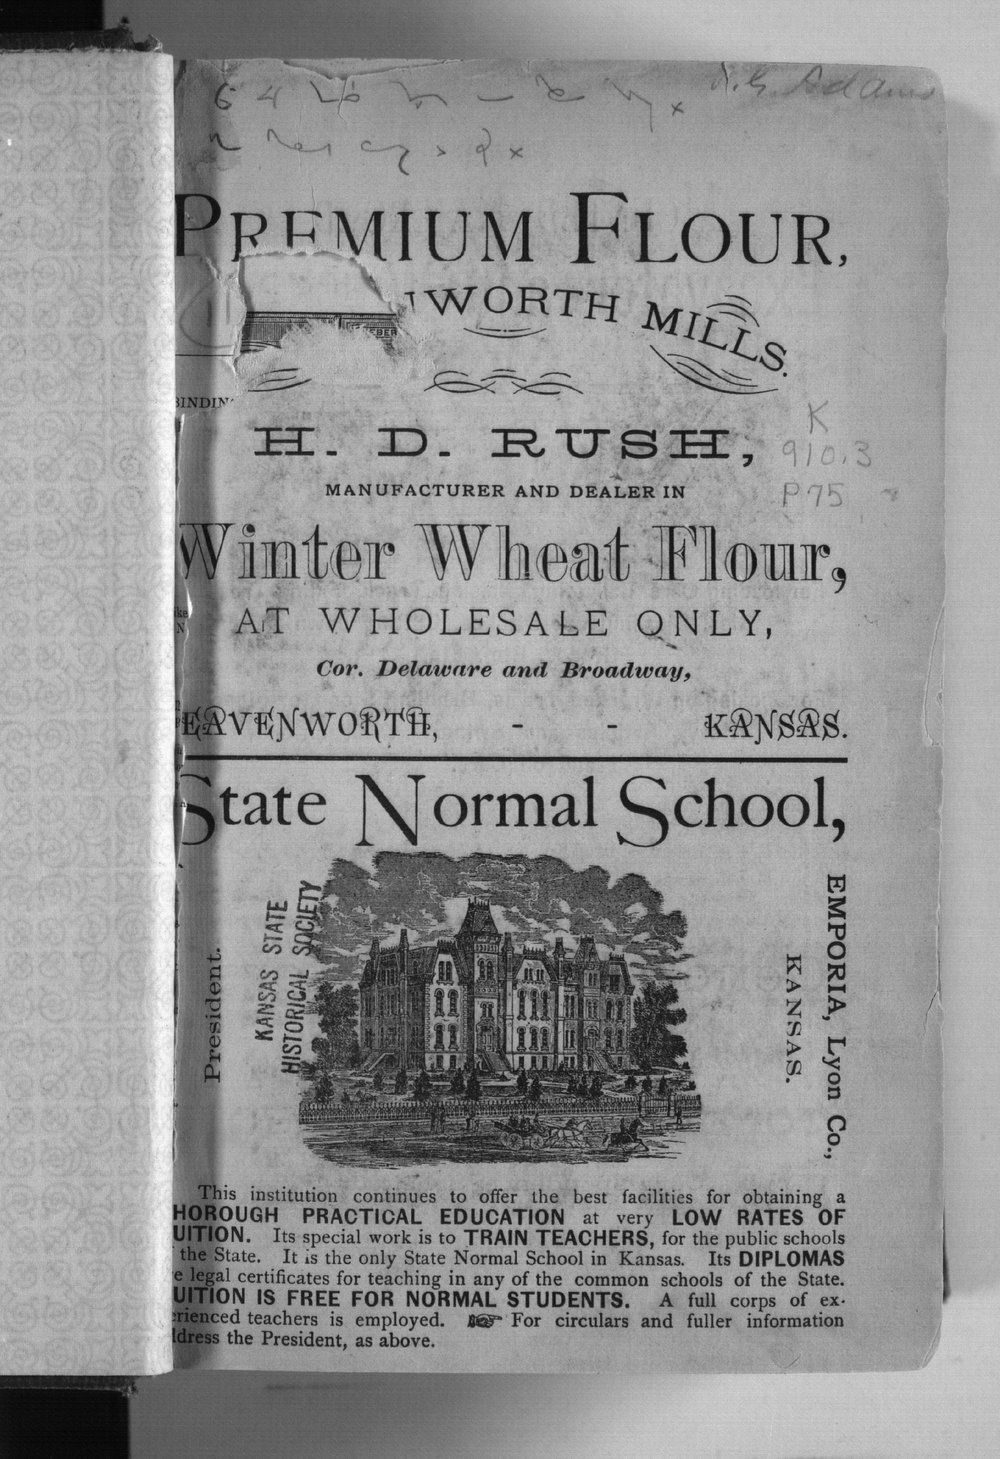 Kansas state gazetteer and business directory - advertisement